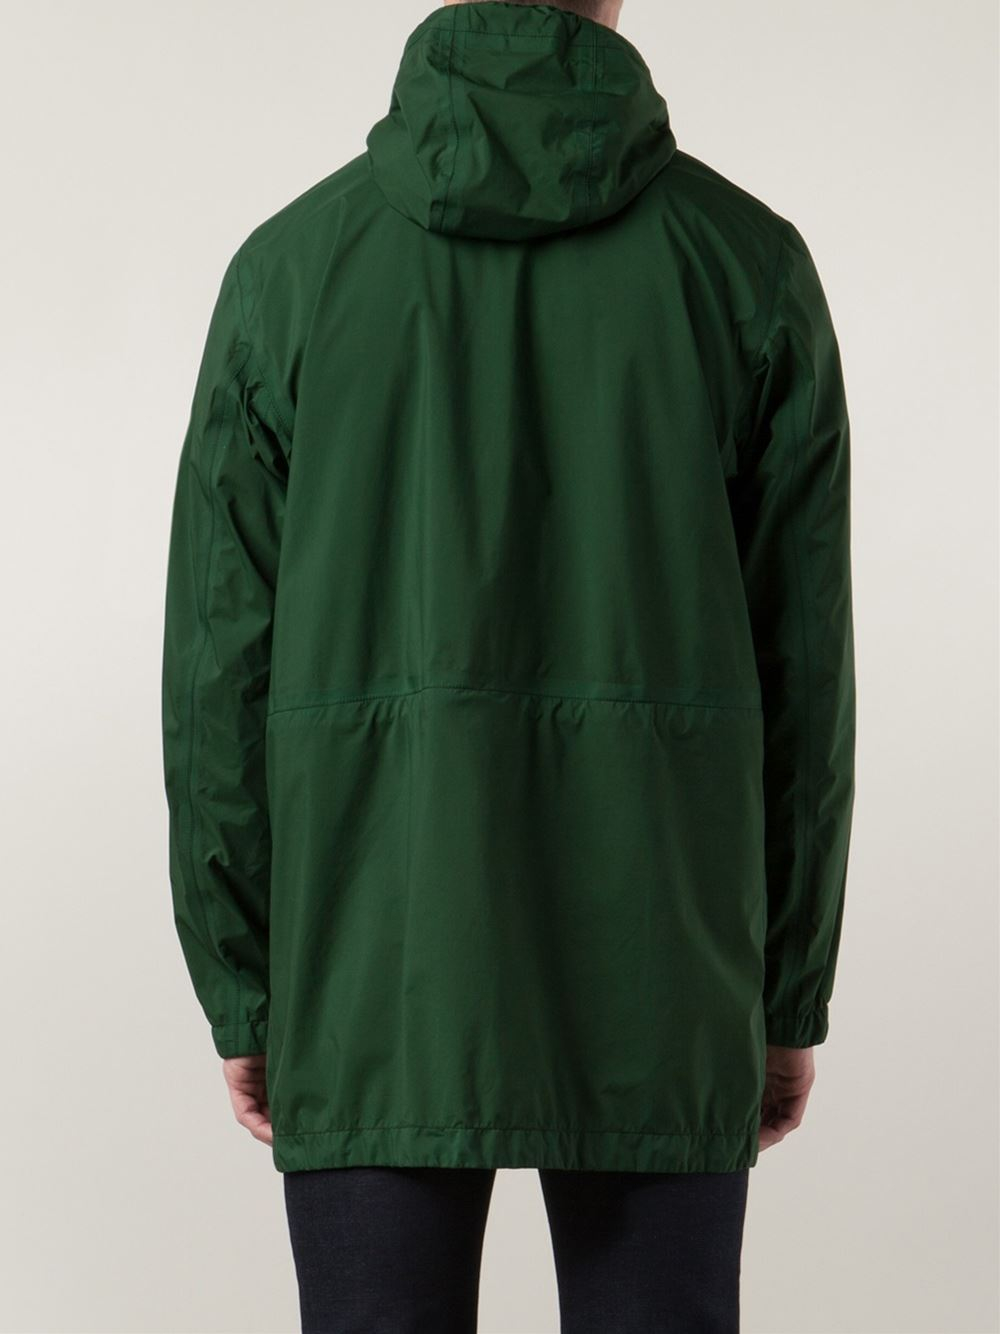 stone island hooded windbreaker in green for men lyst. Black Bedroom Furniture Sets. Home Design Ideas